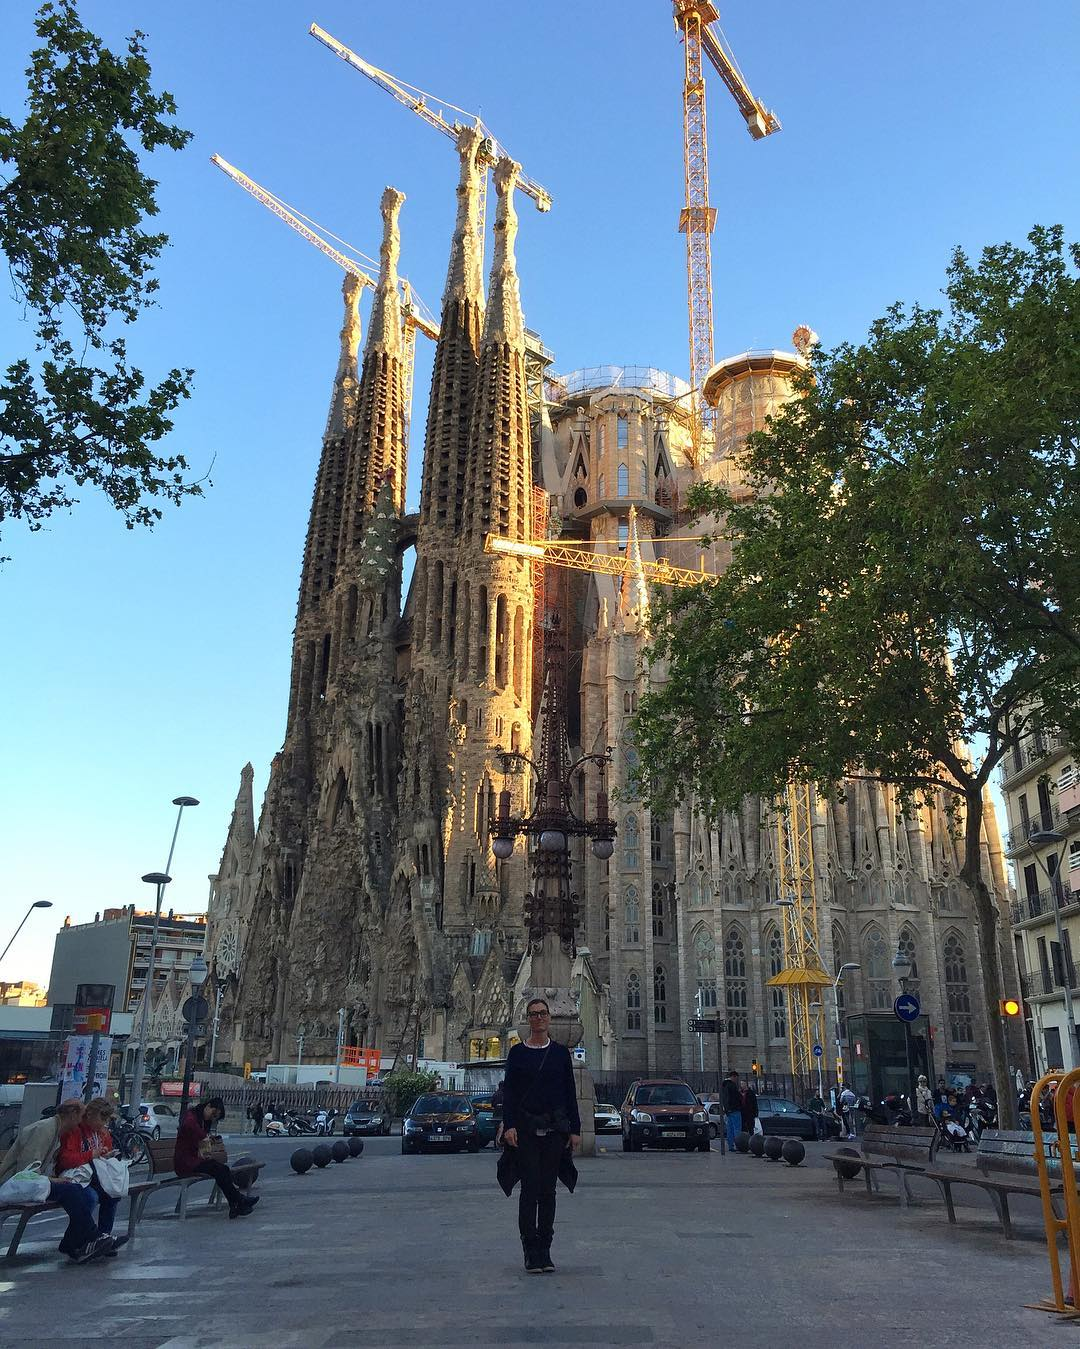 Walking around Barcelona with my wifey today. Looks like they still haven't finished this church? Ha. #134yearssofar #20yearsmore #longtermproject #Gaudi